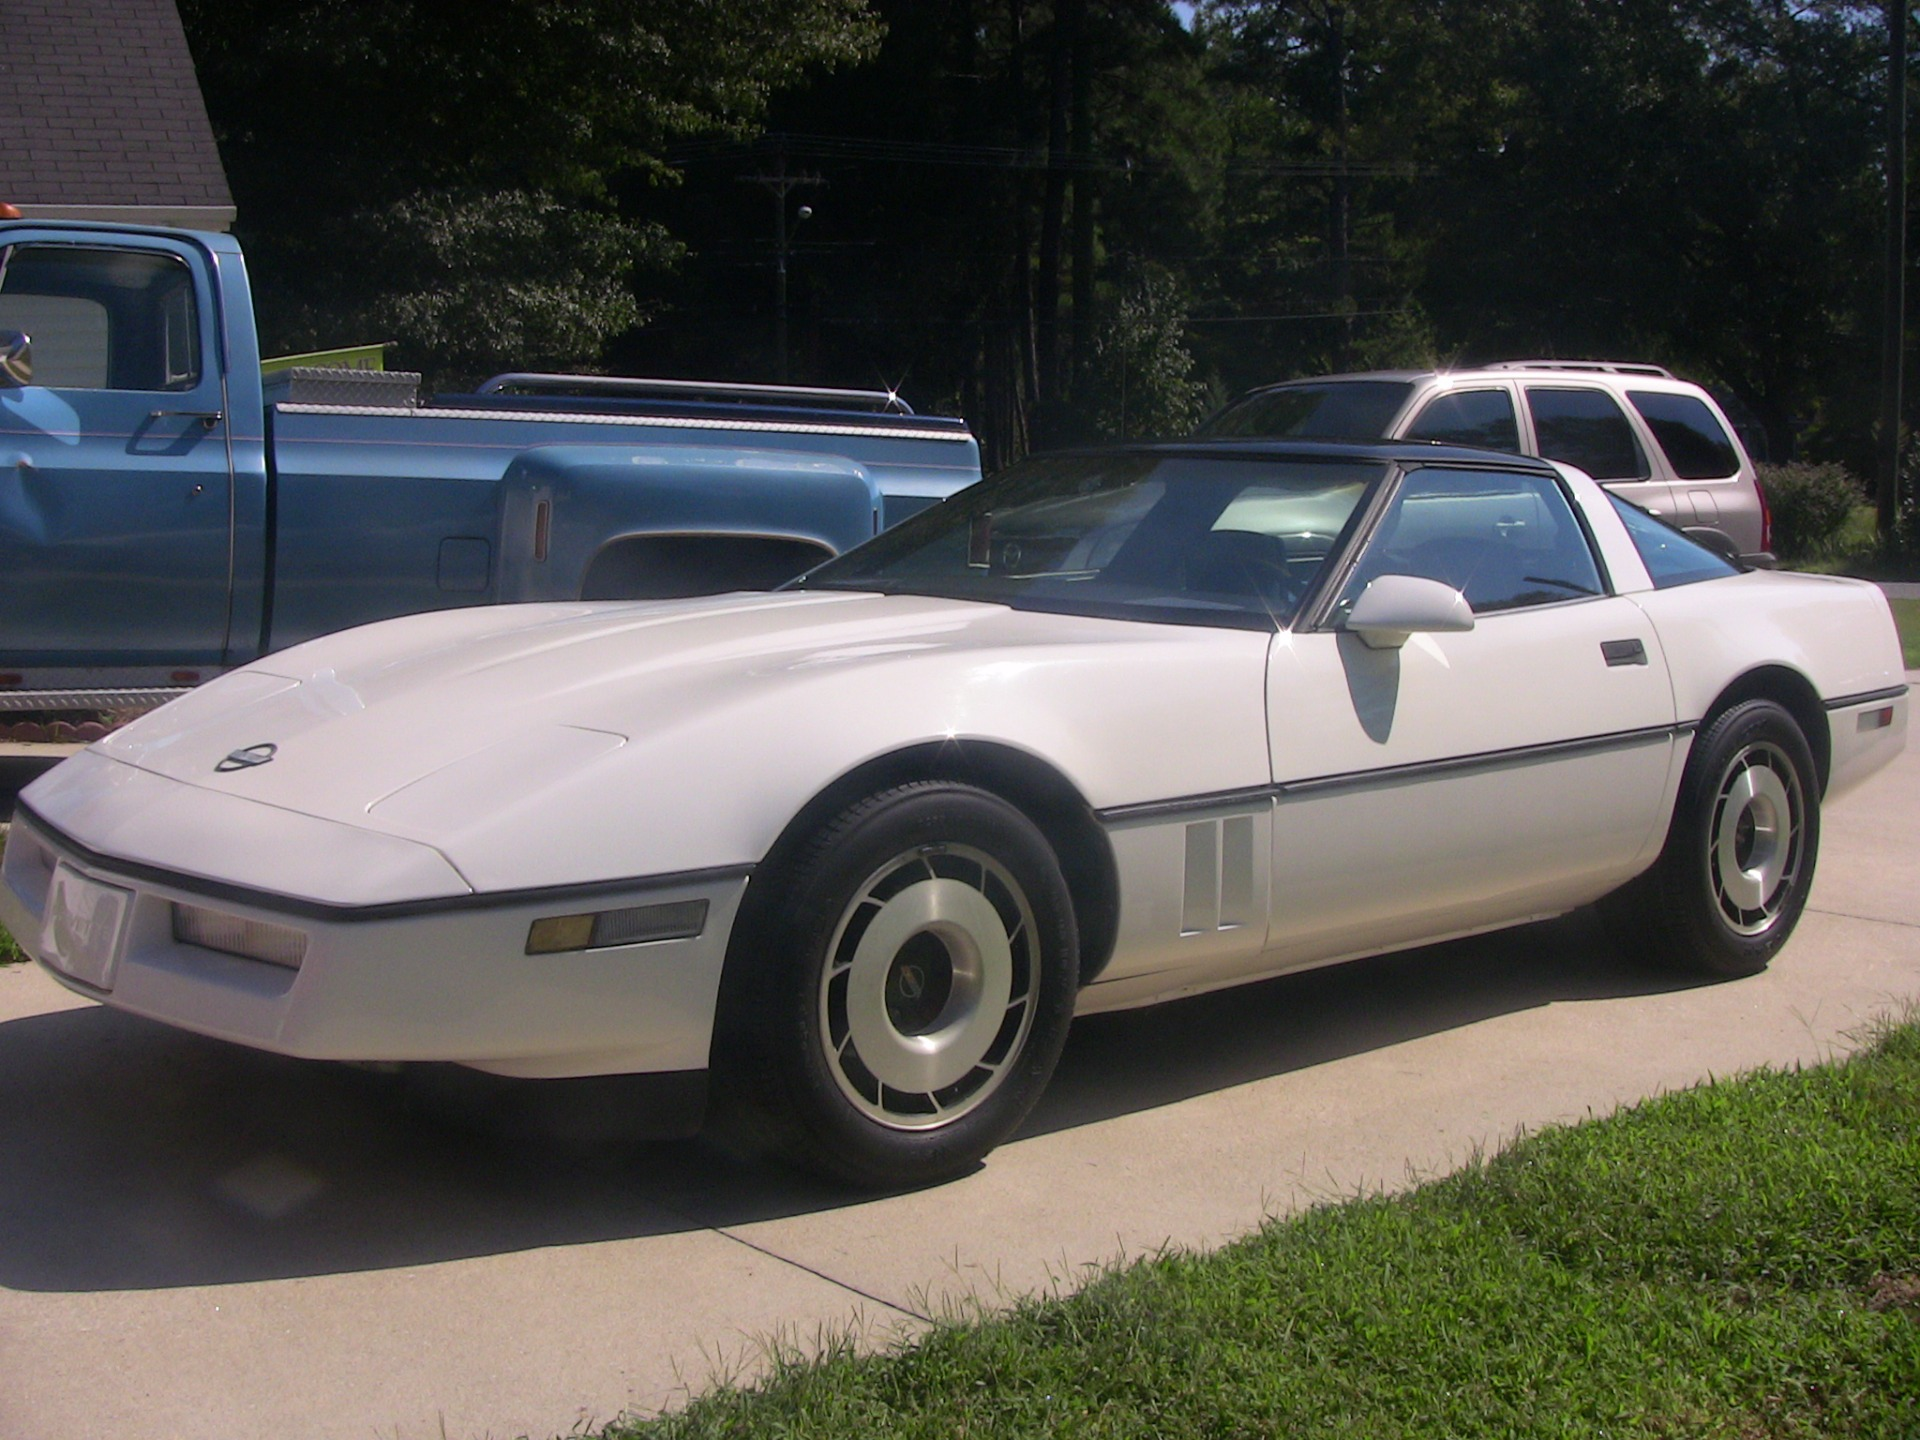 Used Cars For Sale In Charlotte Nc >> 1985 Chevrolet Corvette Stock # A142 for sale near Cornelius, NC | NC Chevrolet Dealer